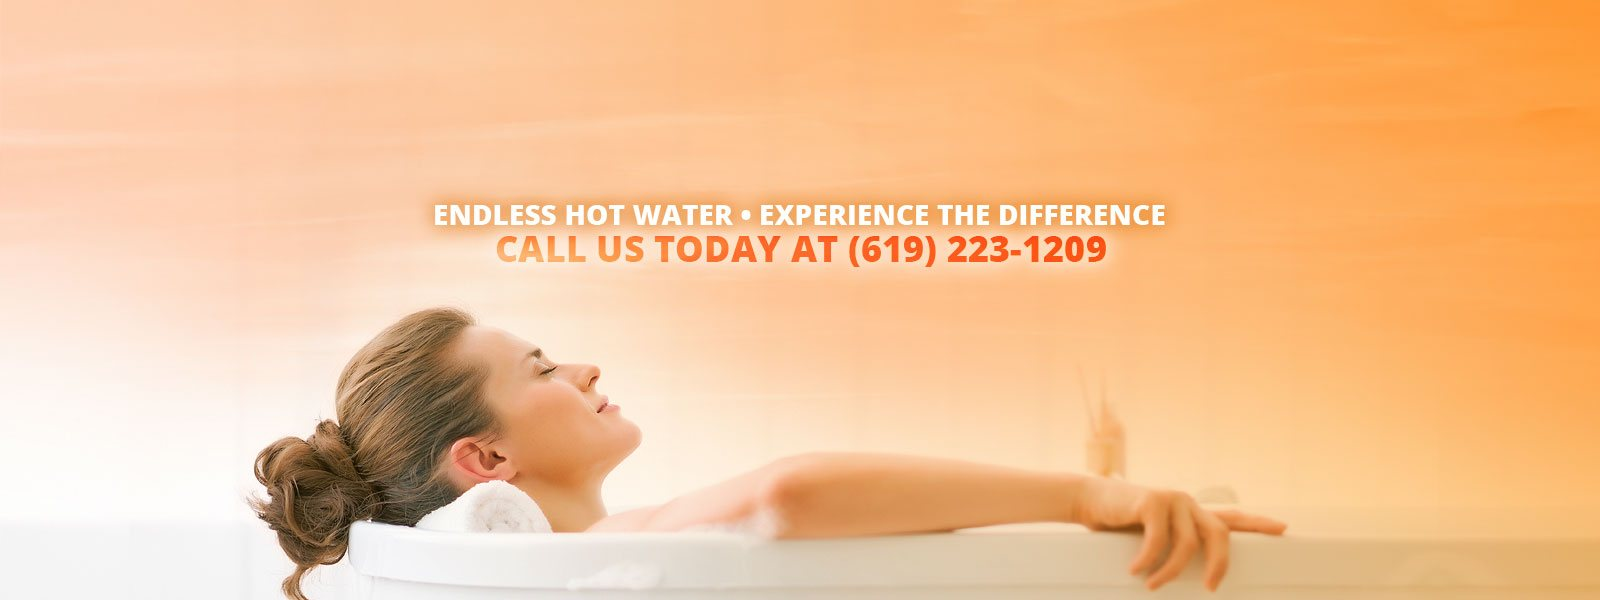 Endless Hot Water • Experience The Difference